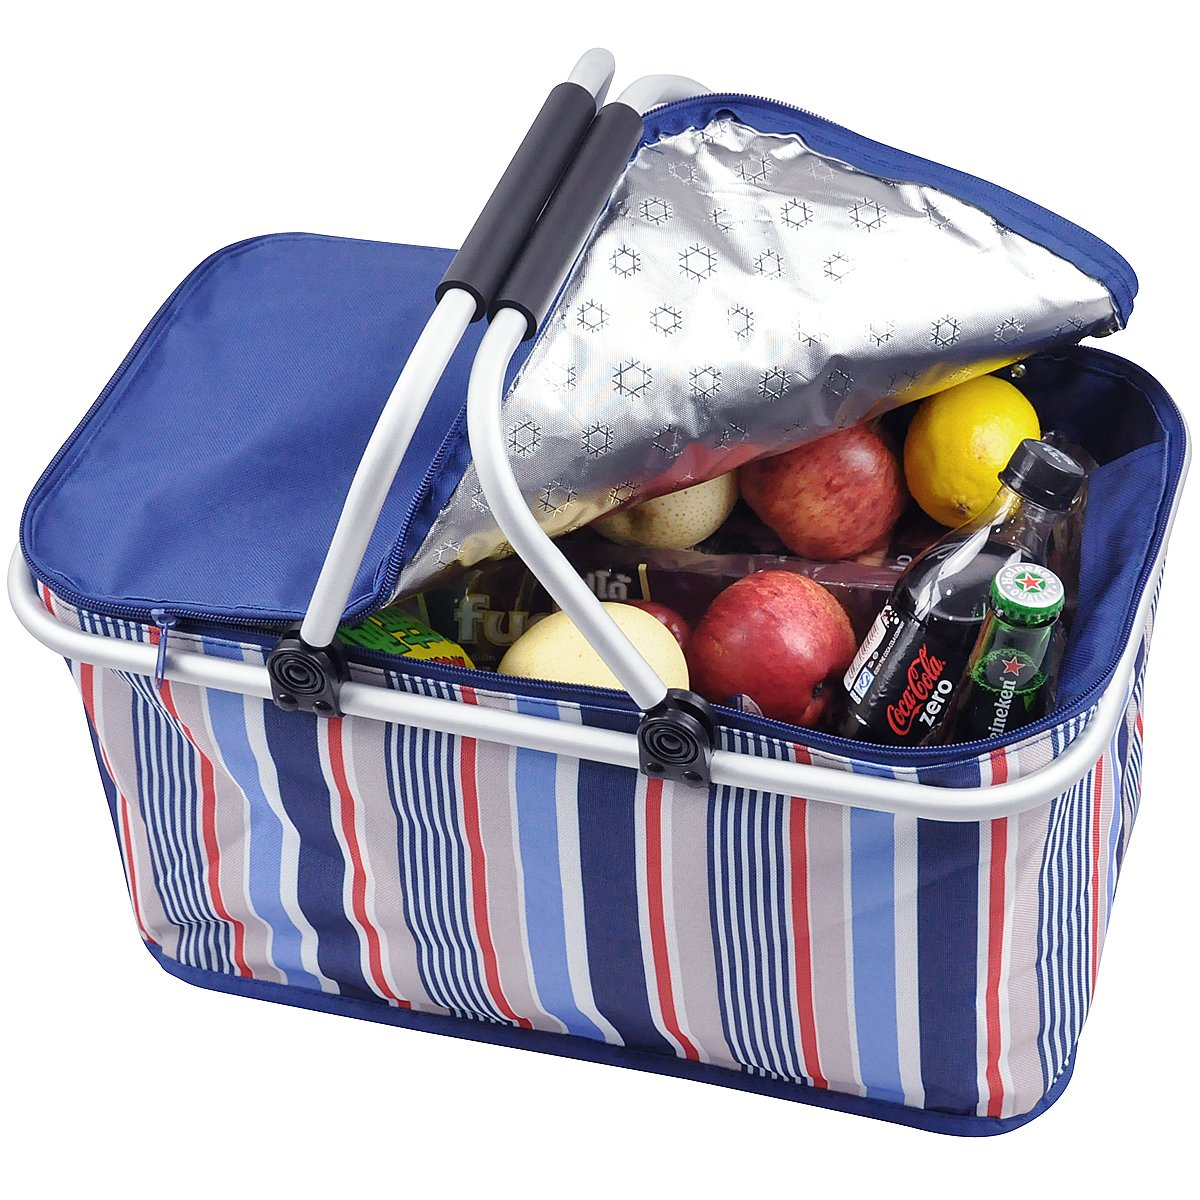 insulated picnic basket insulated picnic basket outdoor collapsible camping ultra 12080